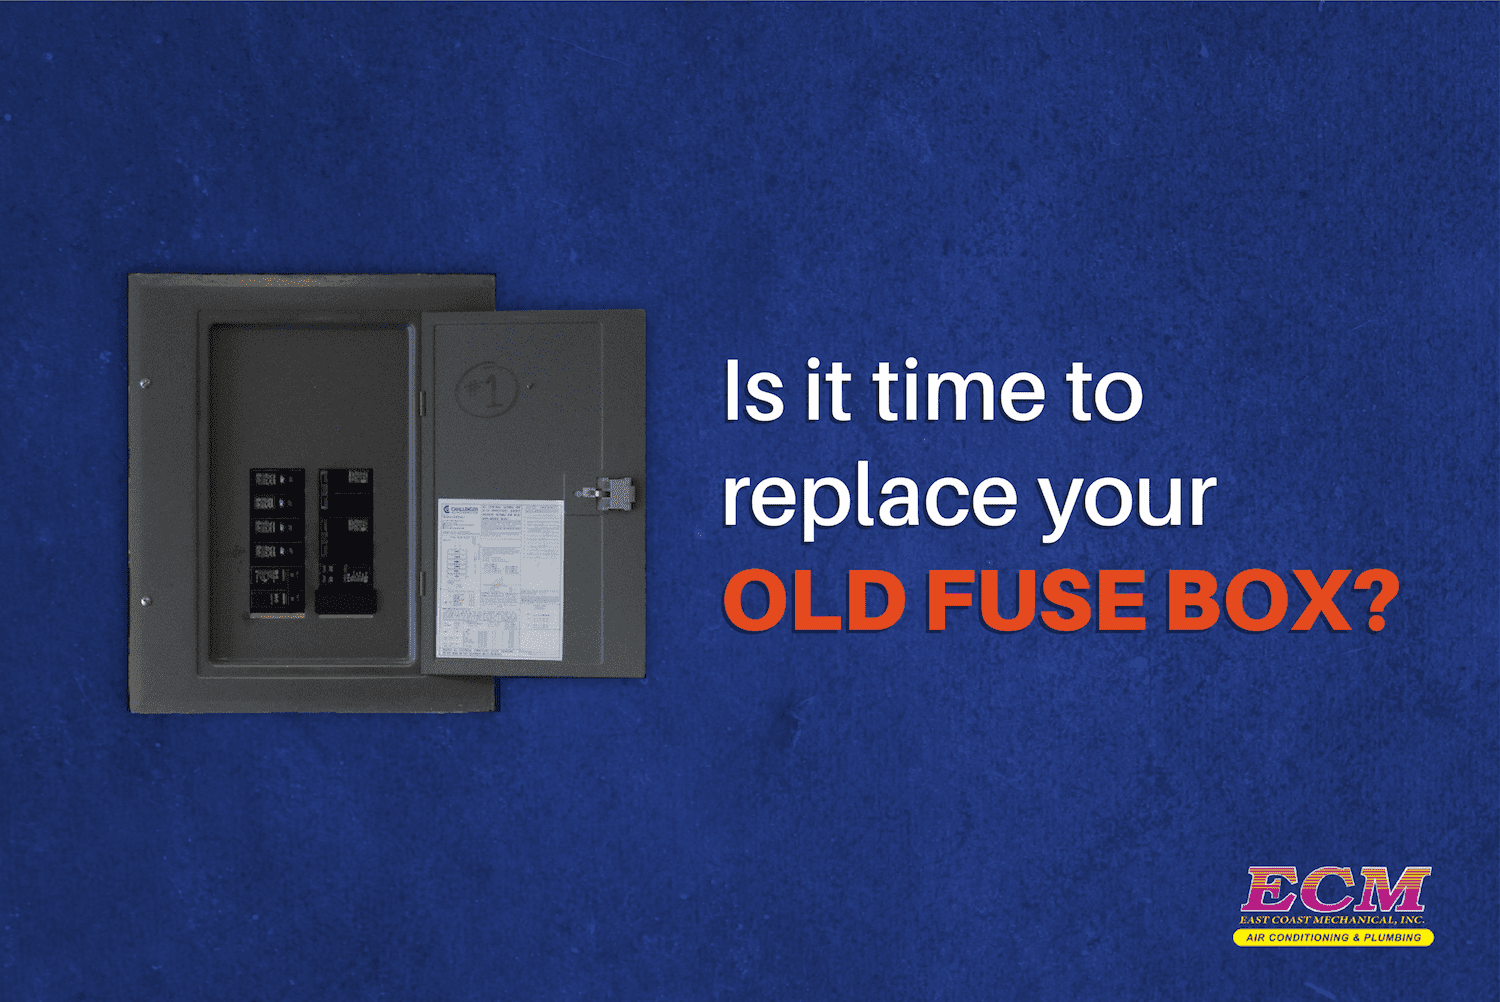 [SCHEMATICS_4US]  Is It Time to Replace an Old Fuse Box with a Circuit Panel? | Replacing Old Fuse Box |  | ECM Air Conditioning